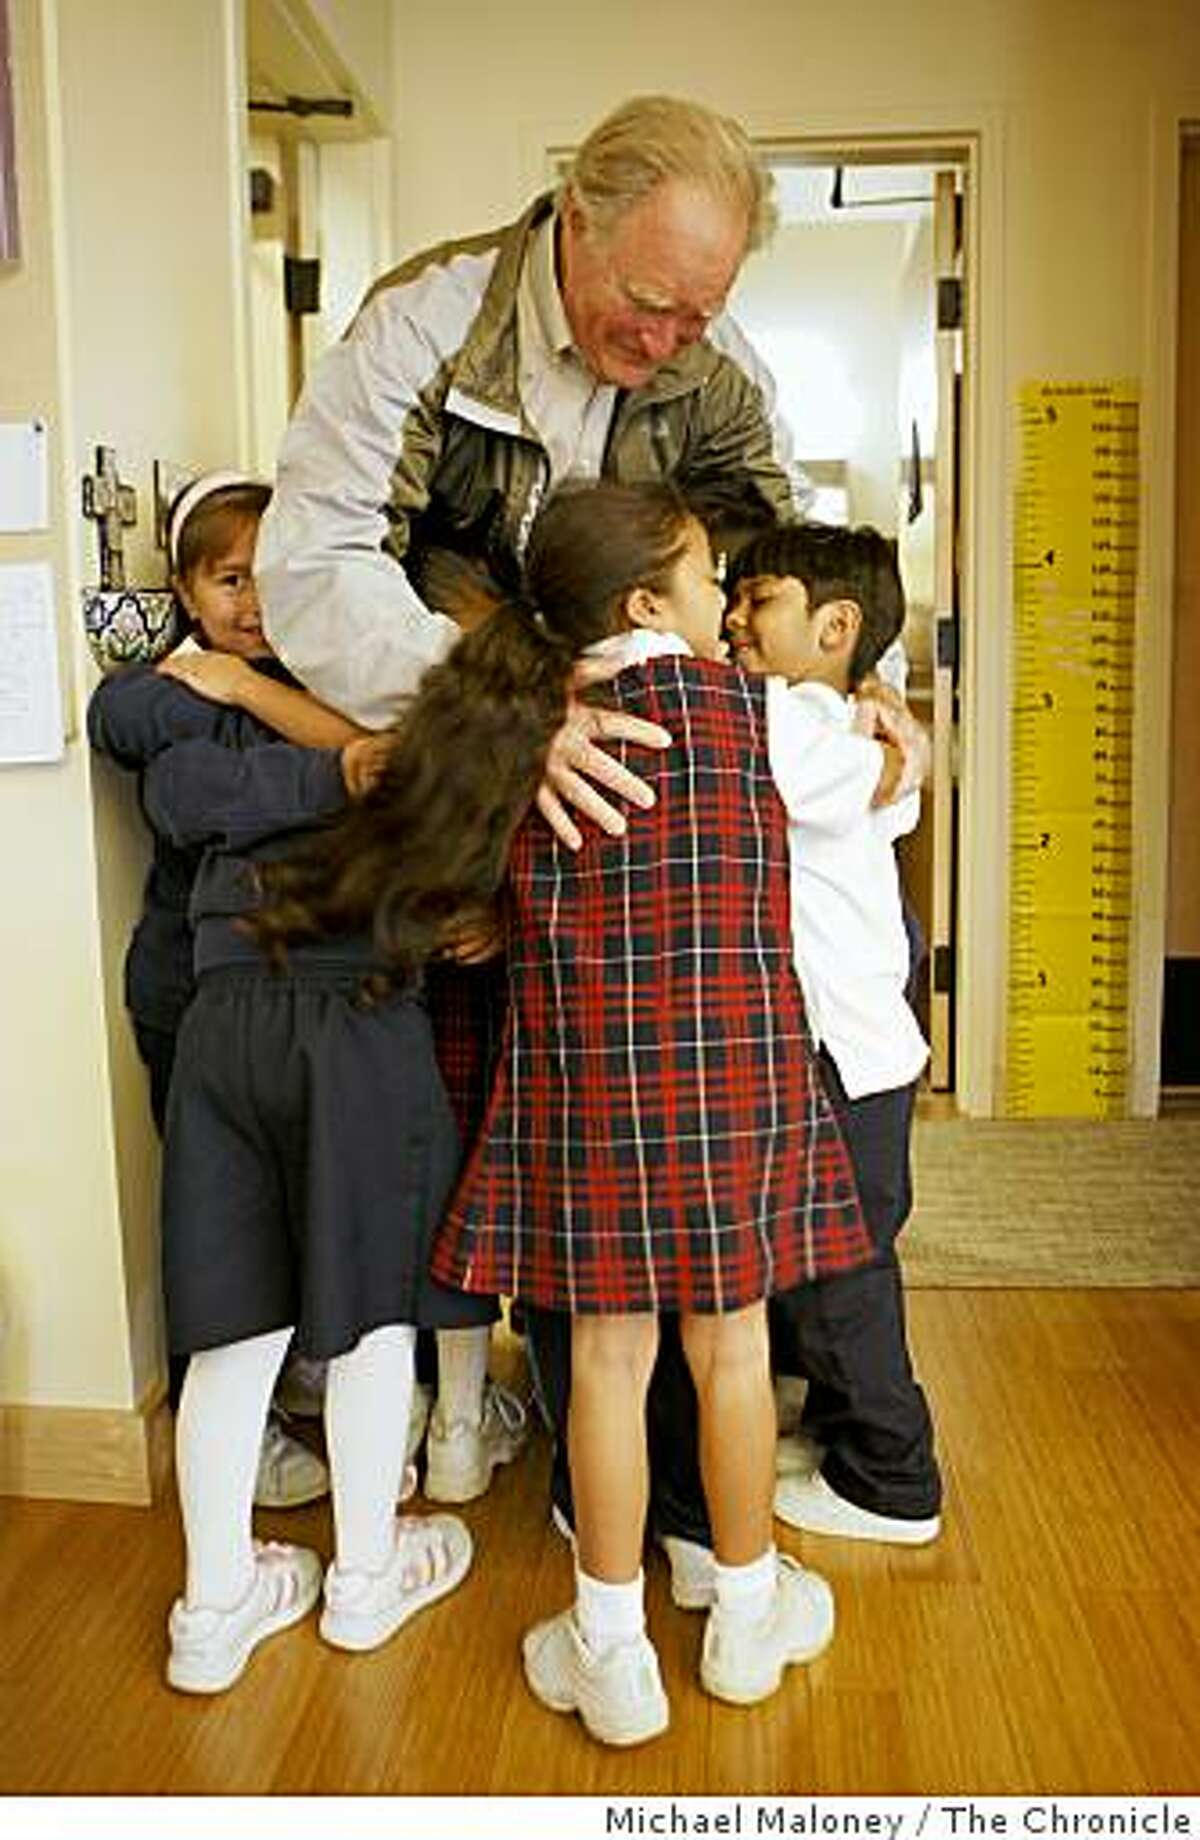 """Philanthropist Bill Somerville gets a hug from the Holy Family School students at the St. Francis Center in Redwood City, Calif., on November 19, 2008 - one of the many organizations he has helped out. The first graders all ran to him yelling """"Mr. Bill!"""" on his visit to the class."""